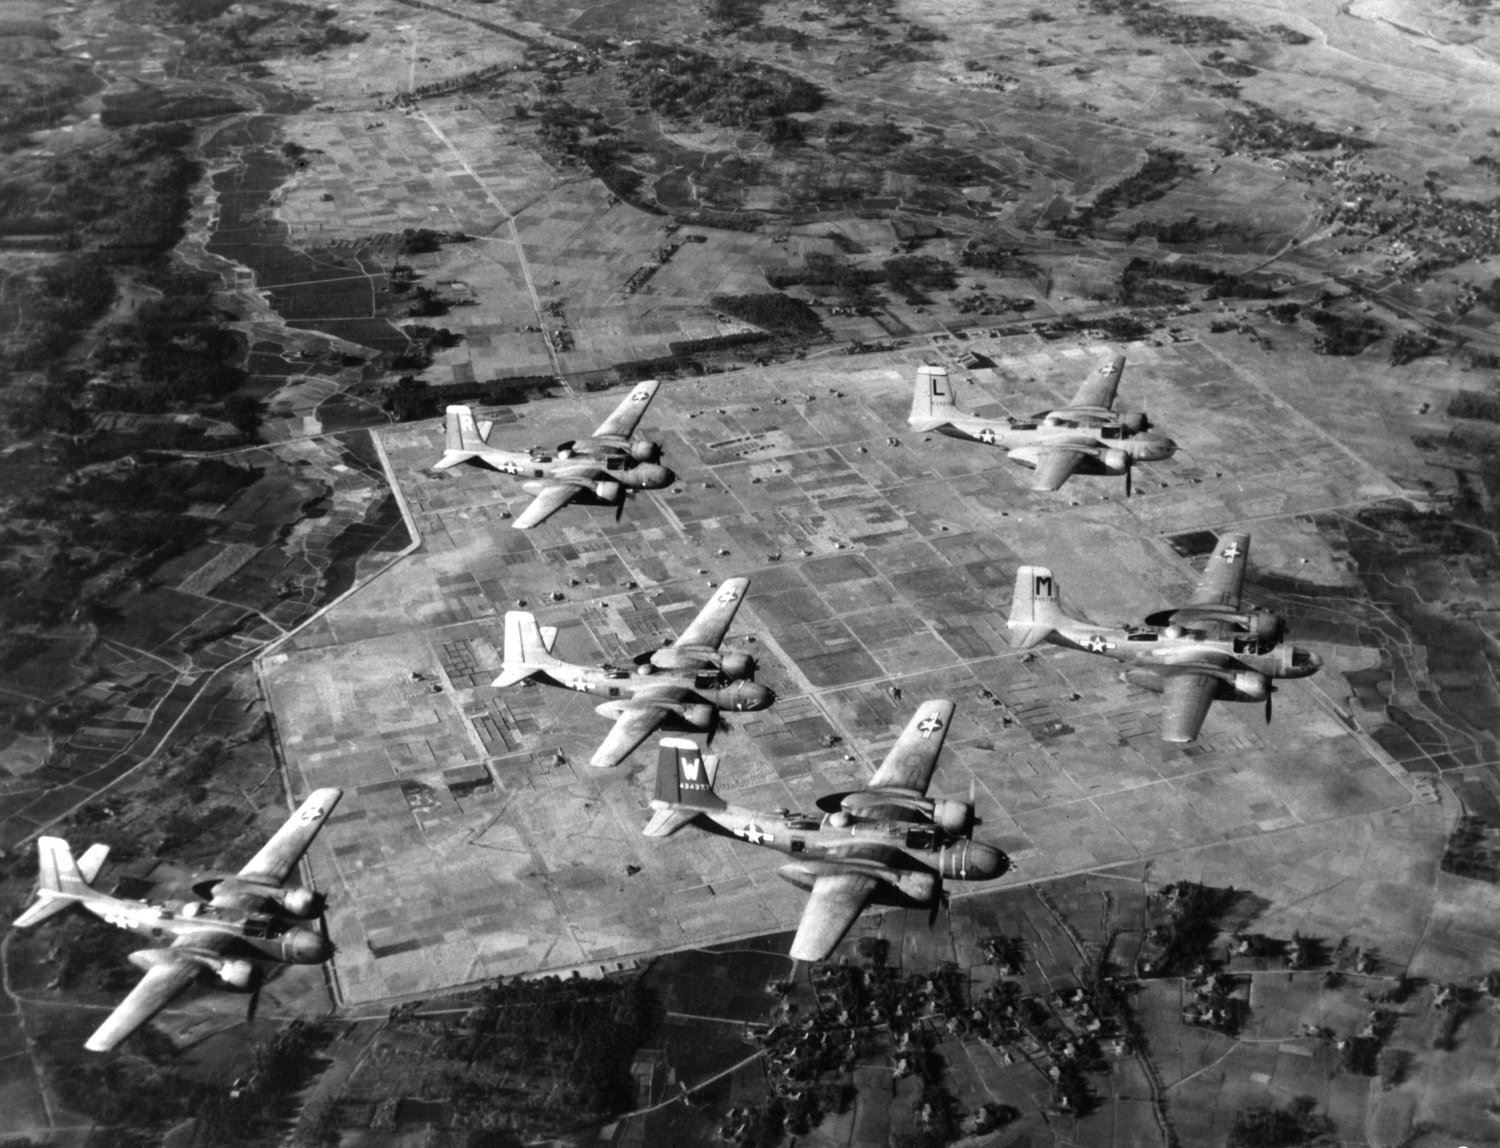 B-26 Invaders over Japan